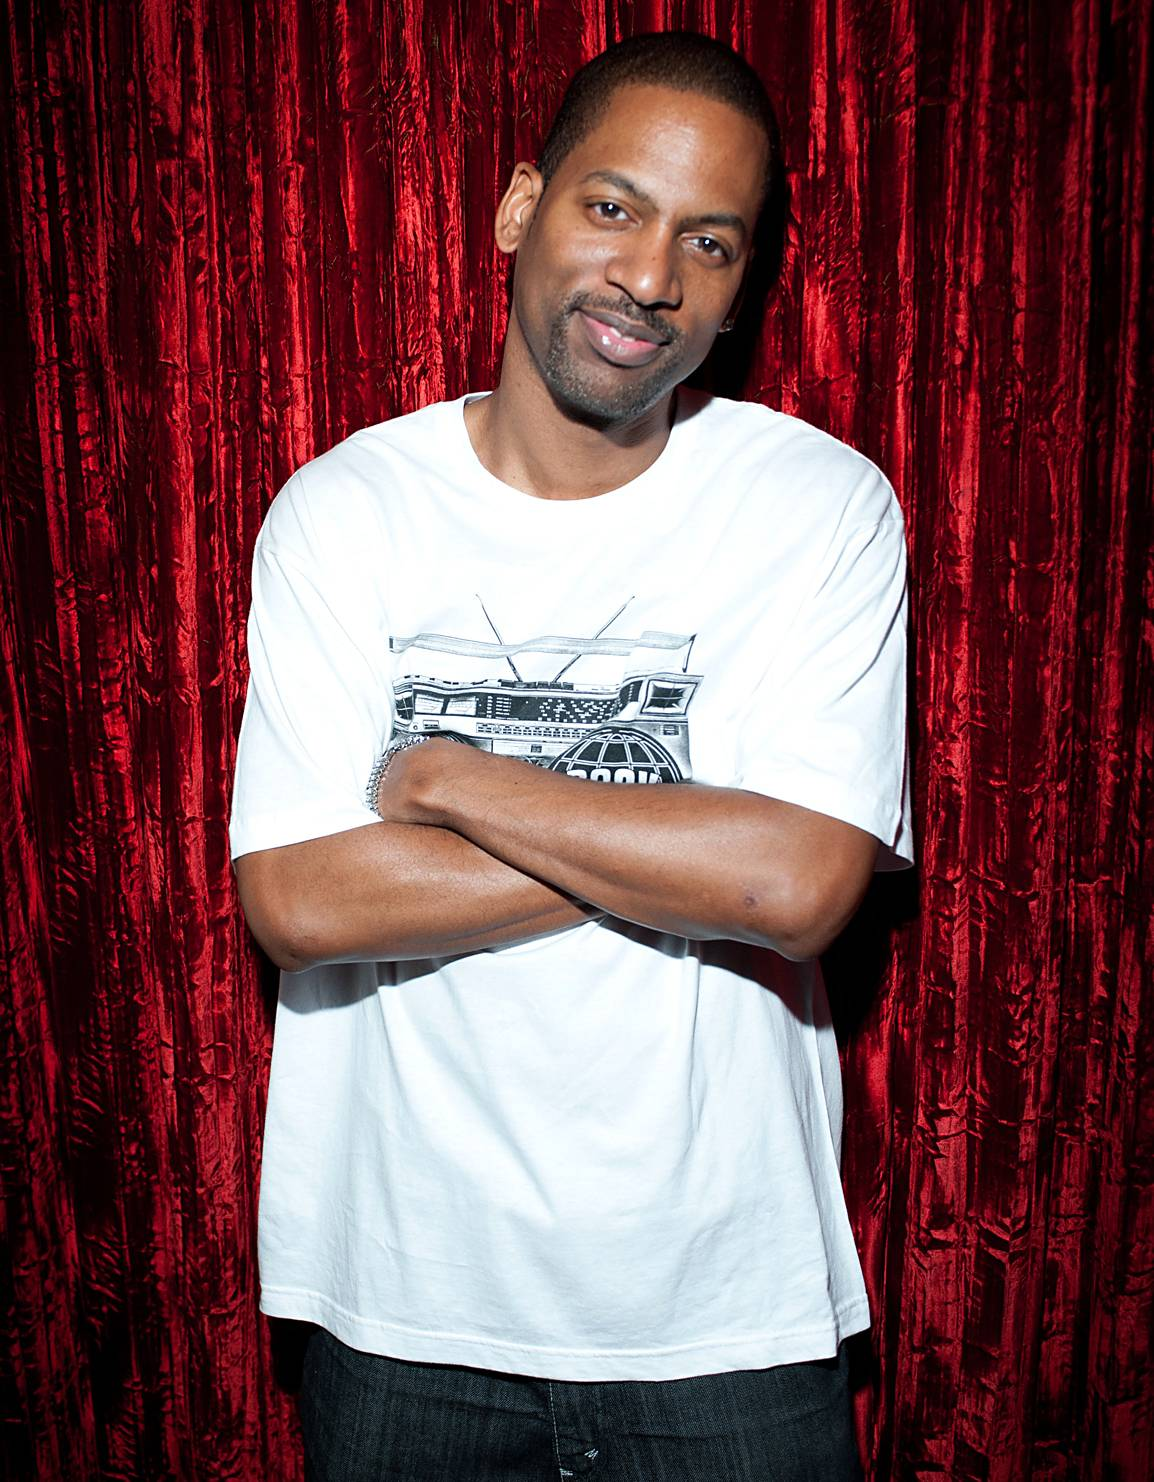 Tony Rock - With a career that spans over a decade, Tony Rock has had his hands in everything from acting to producing. Being Chris Rock's younger brother, the Brooklyn-born comedian worked hard to create his own identity and is respected for his contributions to the comedy world.(Photo: Adrian Sidney/PictureGroup)